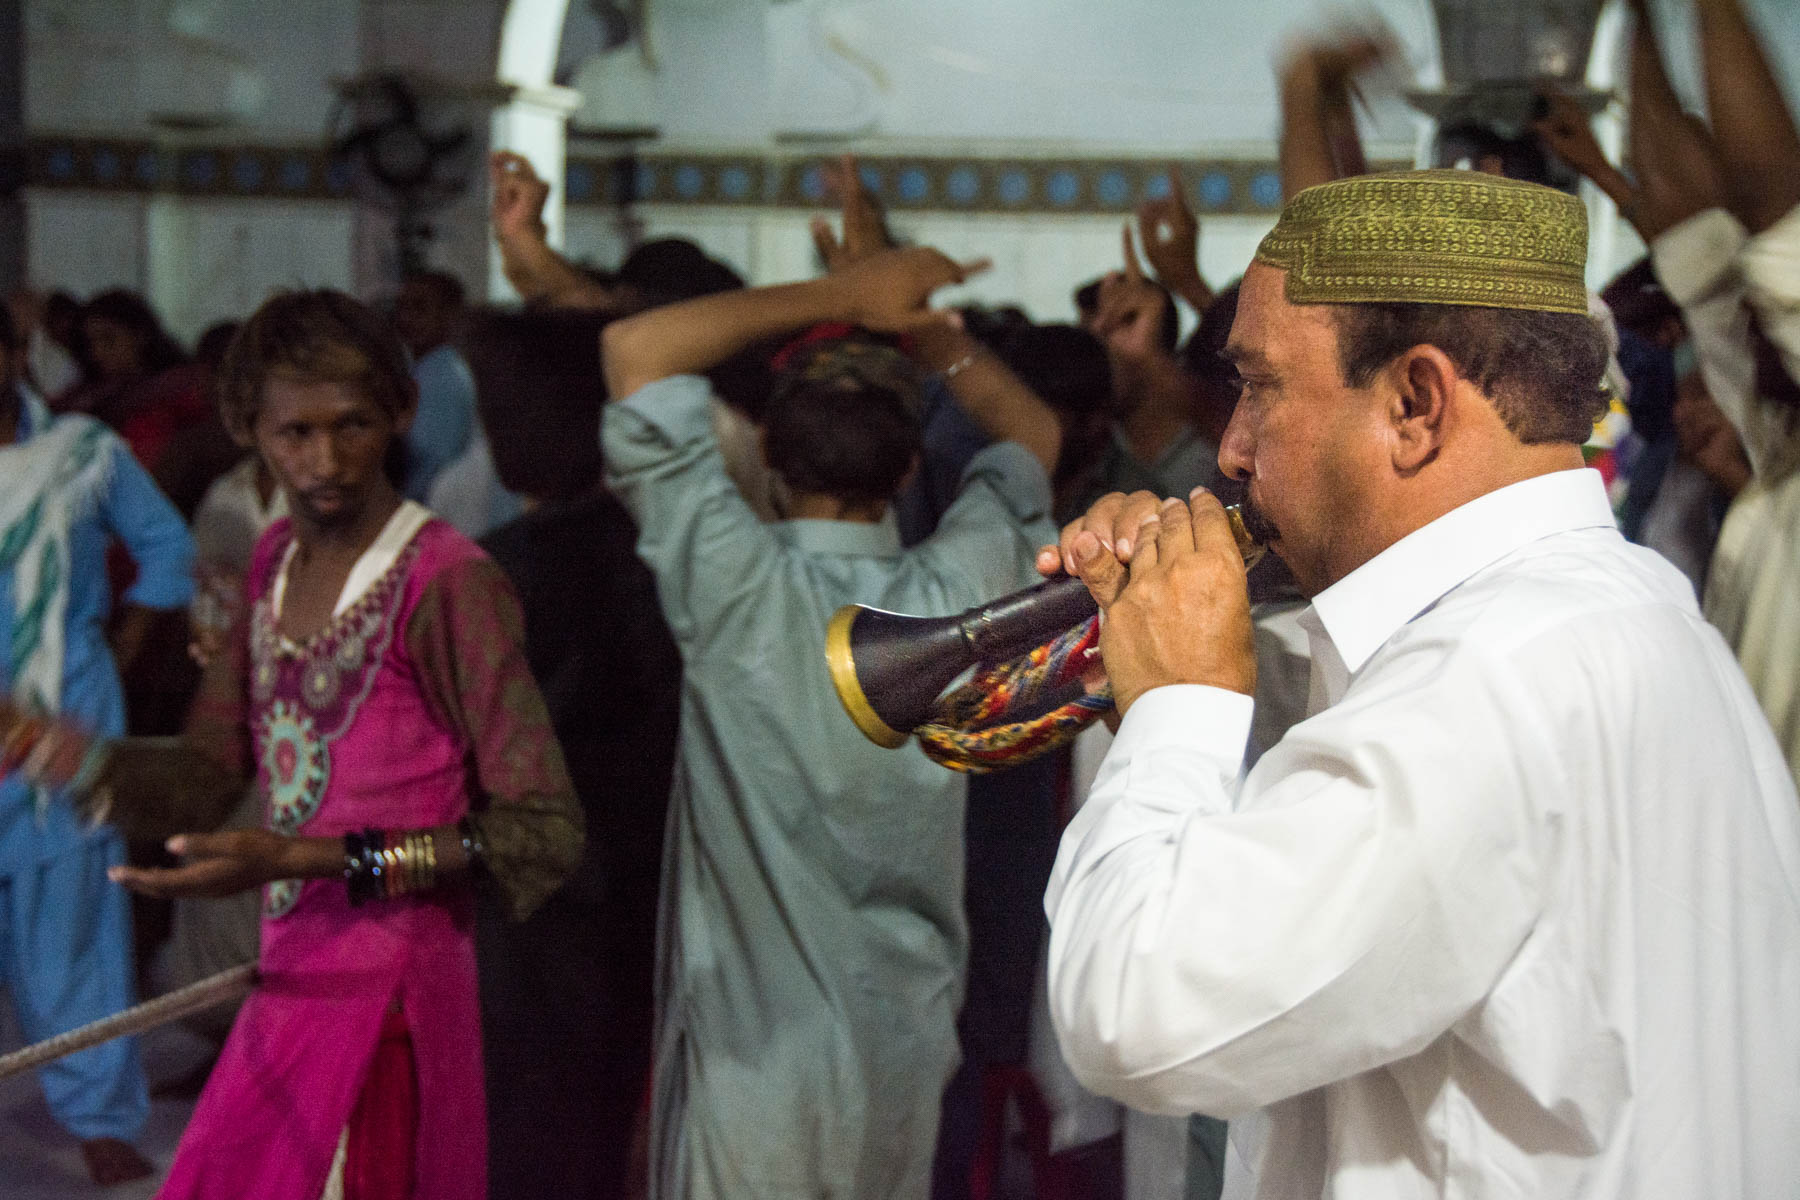 A horn player at the Lal Shahbaz Qalandar shrine in Sehwan, Iran